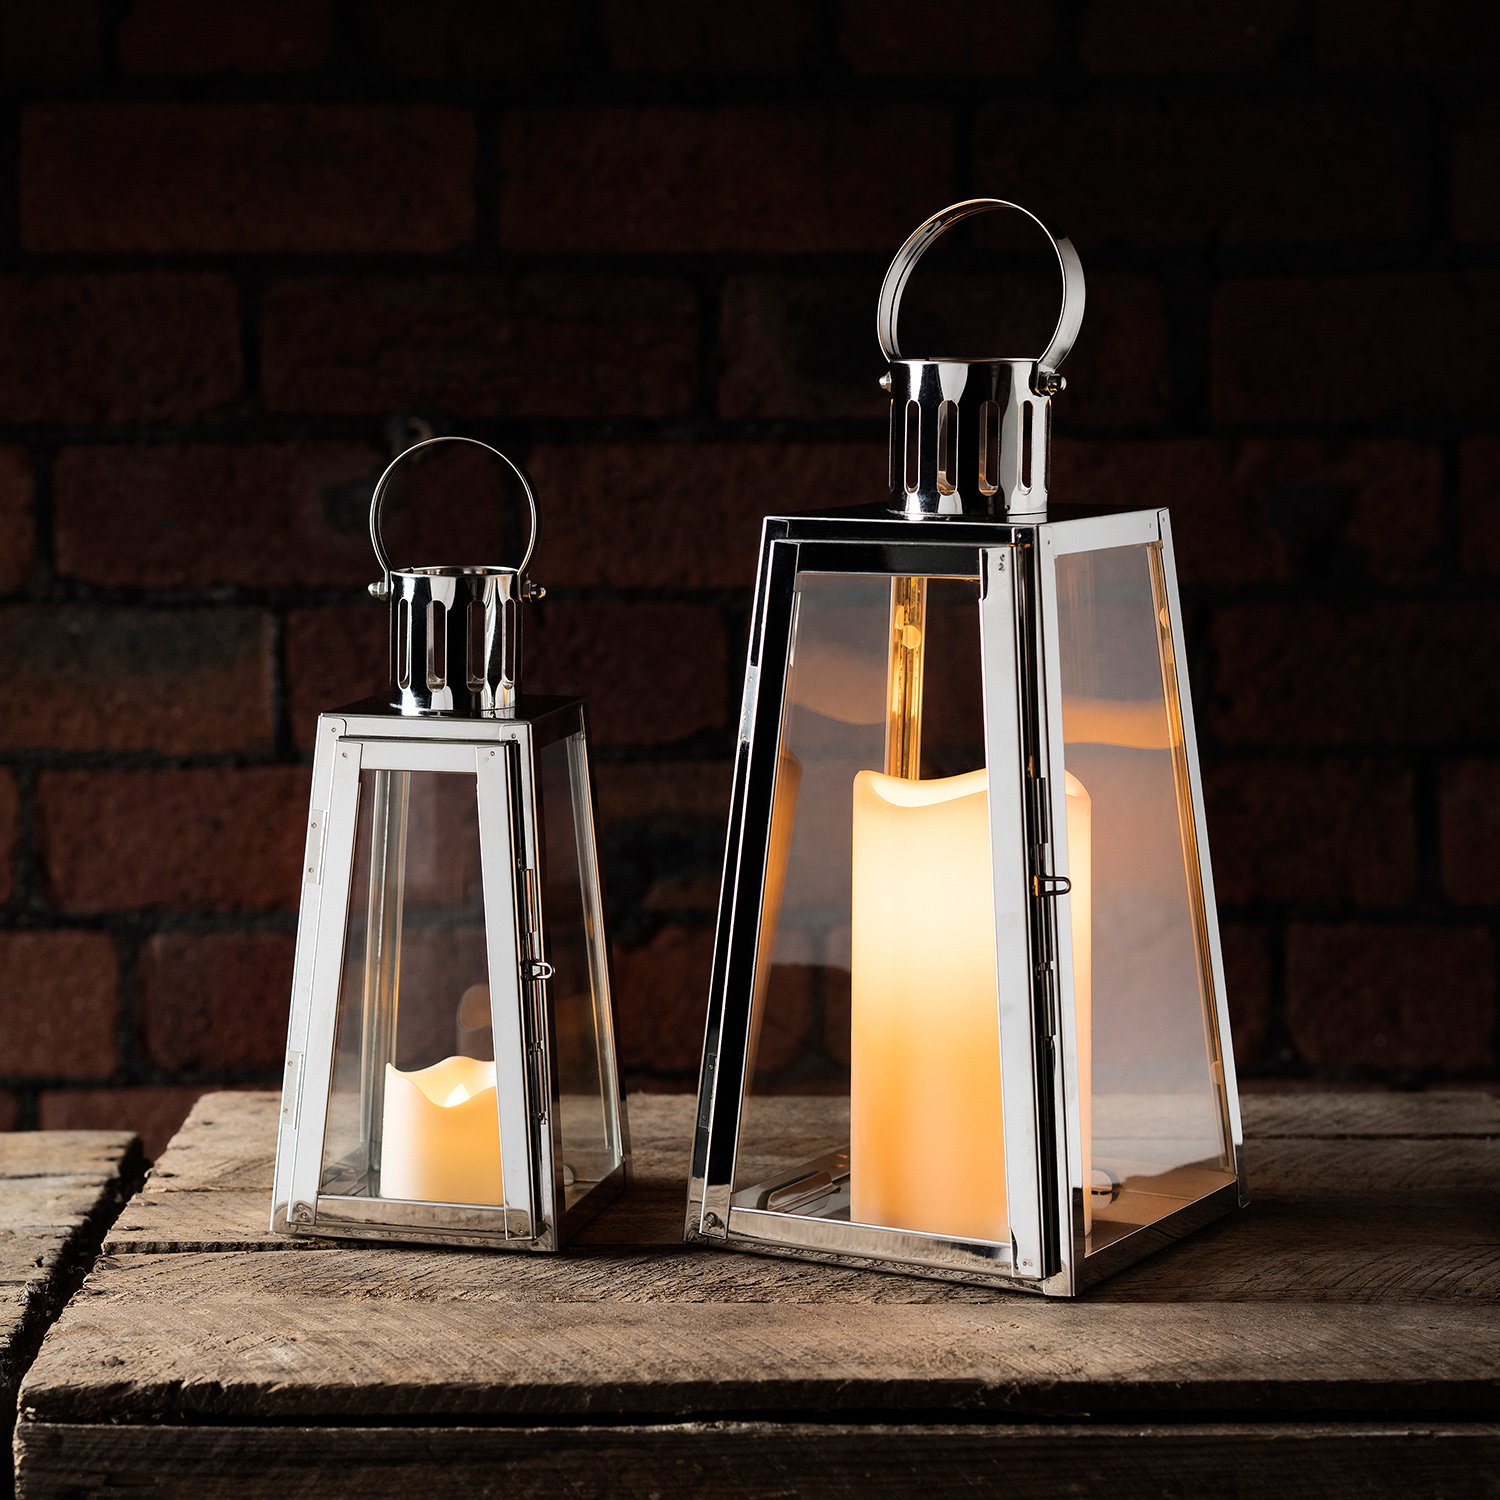 Lights4fun Set of 2 Stainless Steel Trapeze Battery Operated LED Candle Lanterns